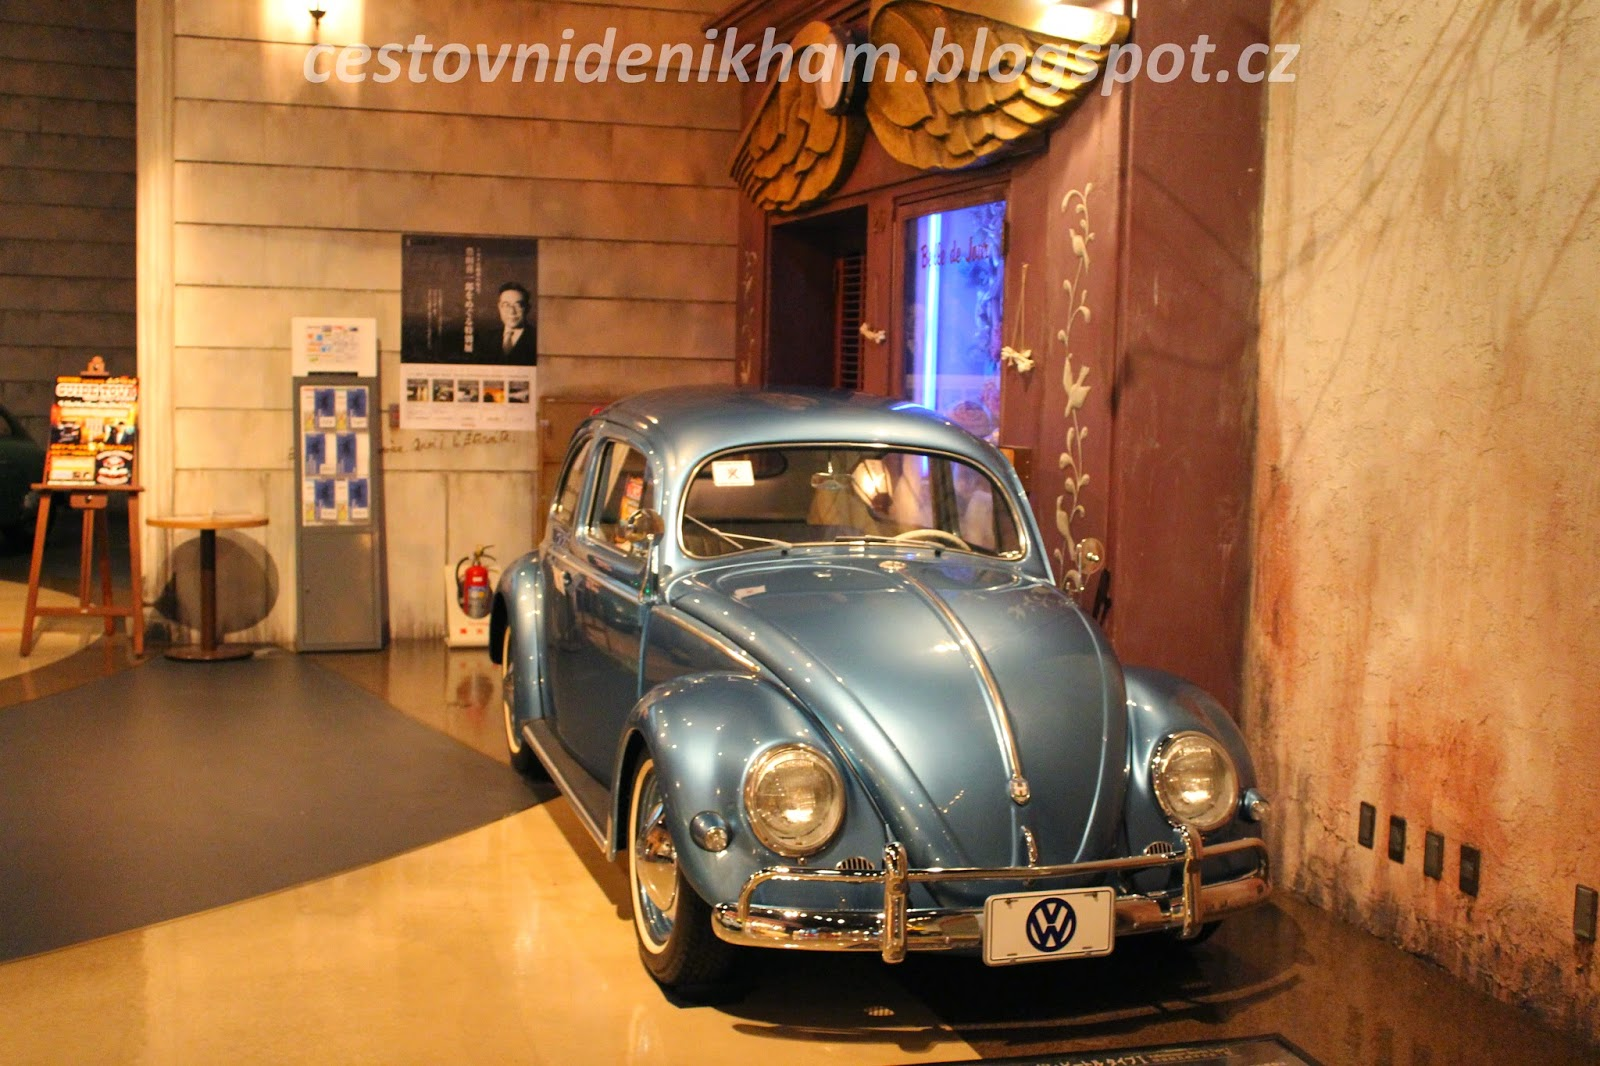 exhibition of historical vehicles